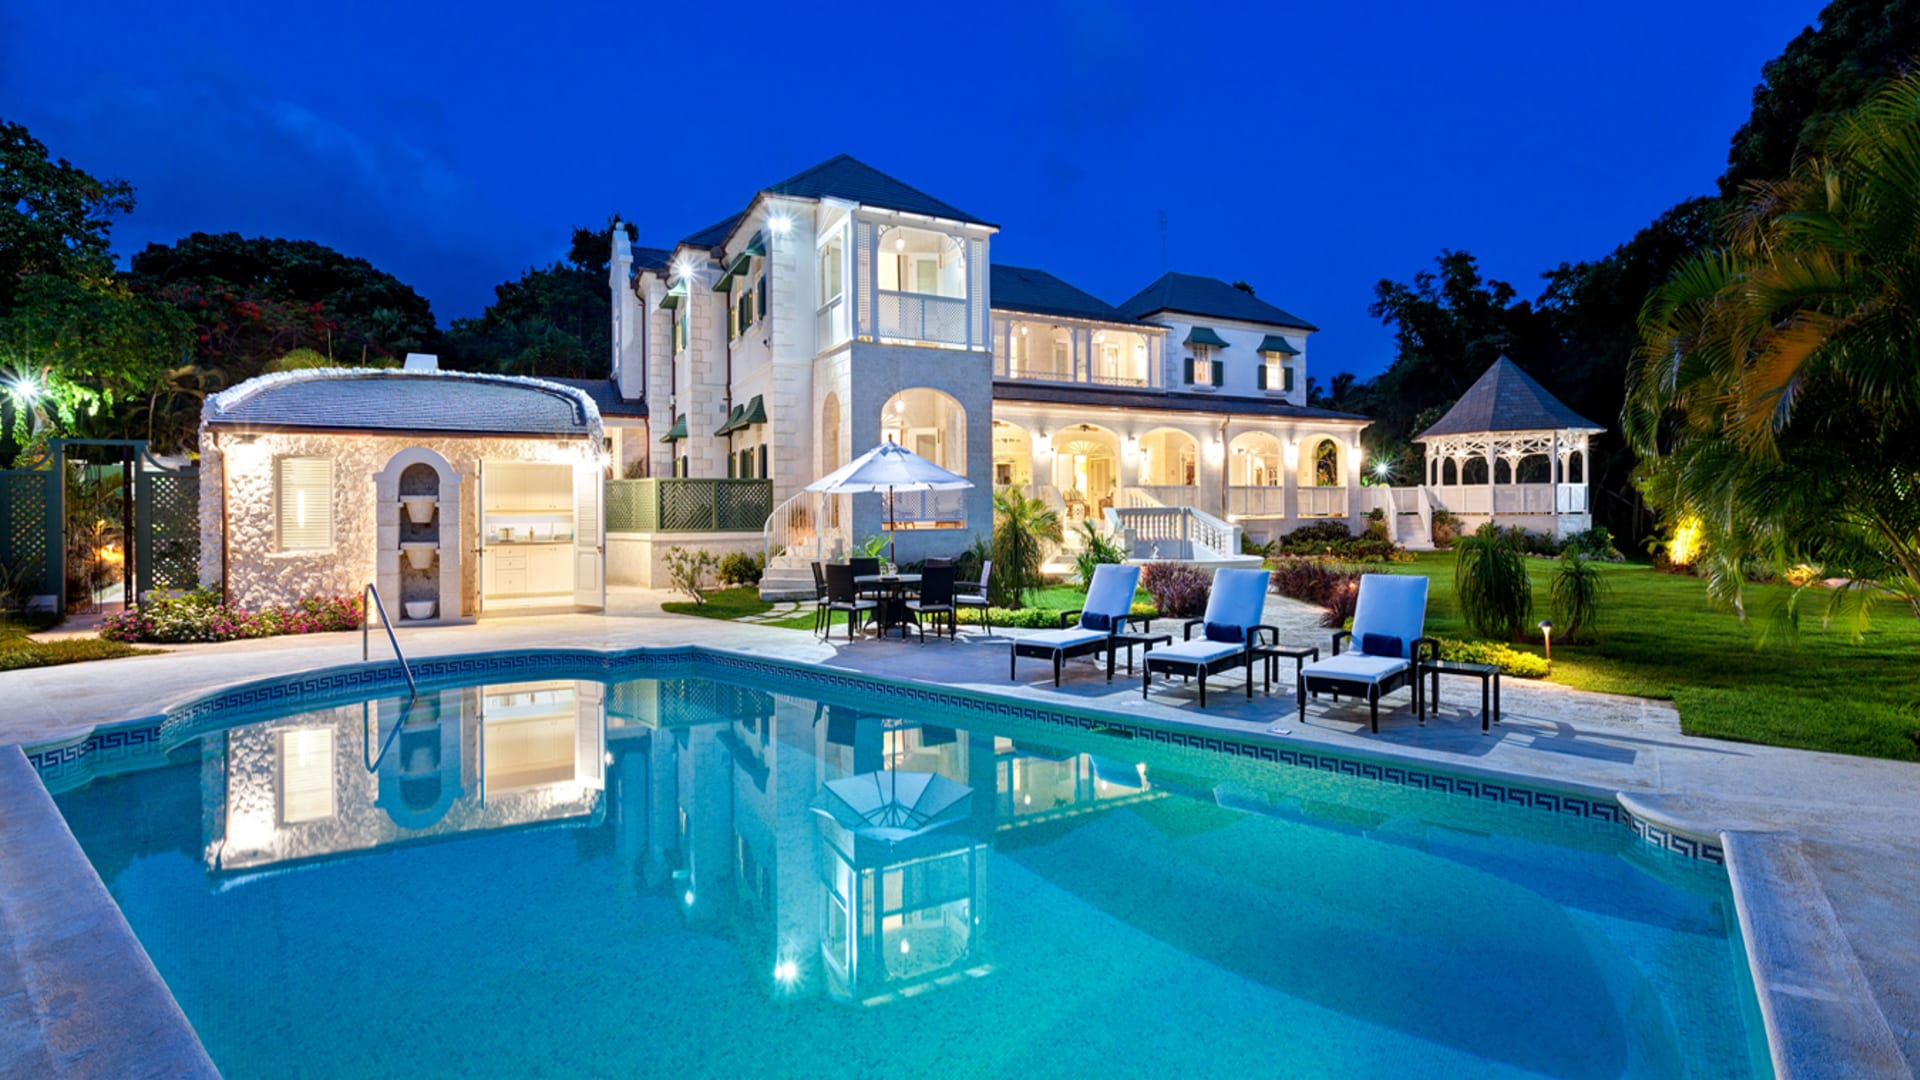 Windward house barbados west coast luxury property - Les plus belles maisons du monde photos ...